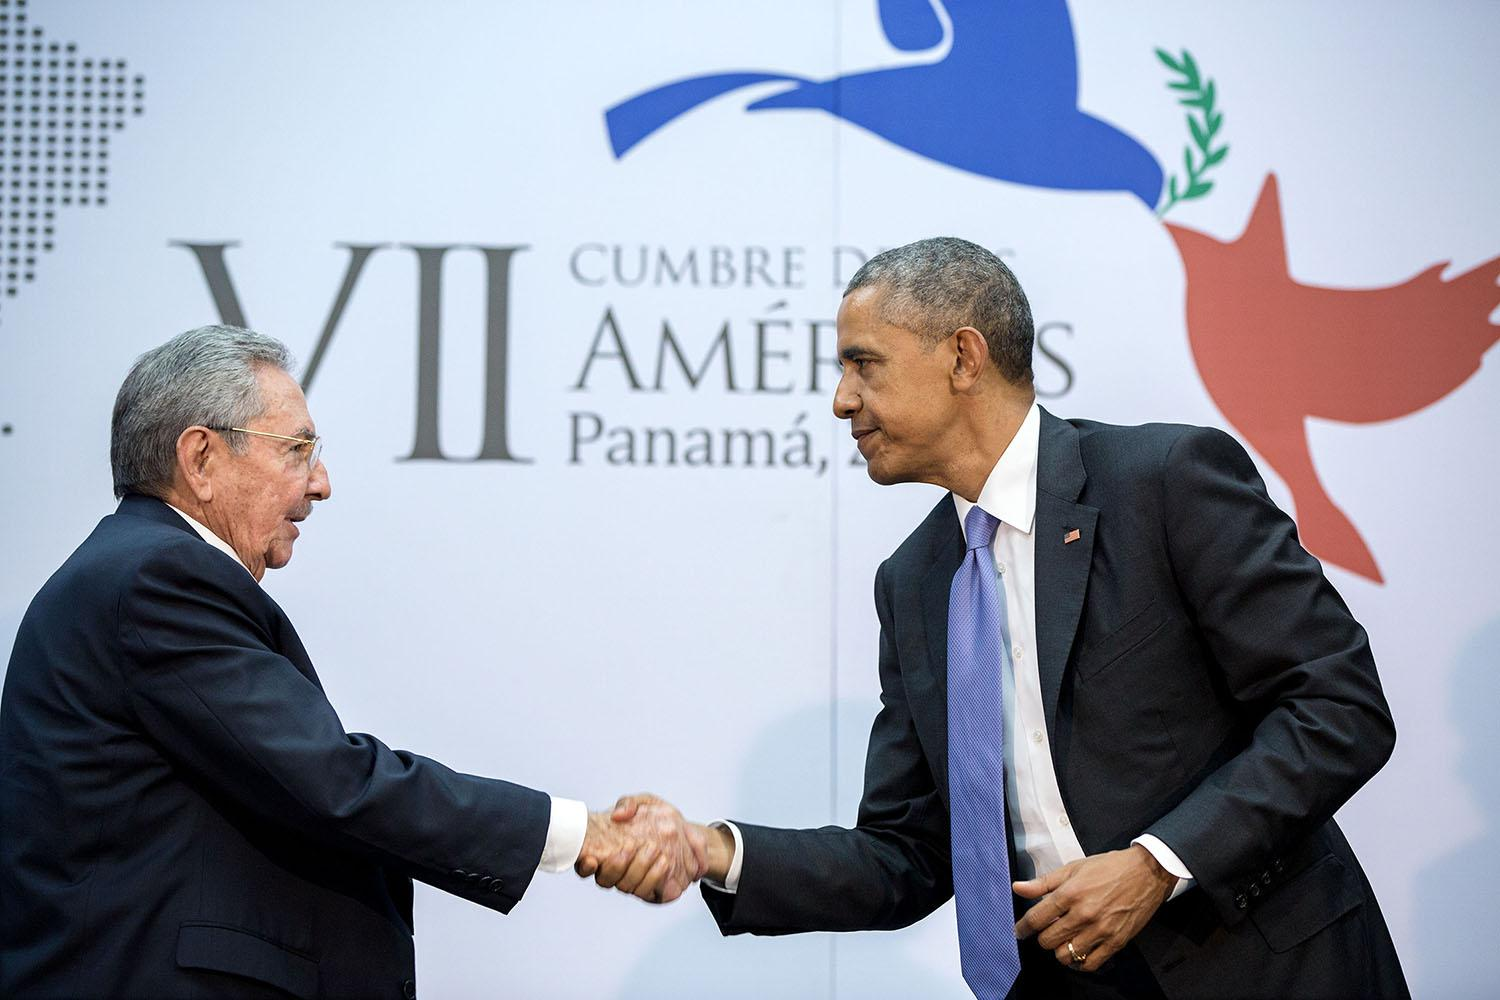 The culmination of years of talks resulted in this handshake between the President and Cuban President Raúl Castro during the Summit of the Americas in Panama City, Panama.